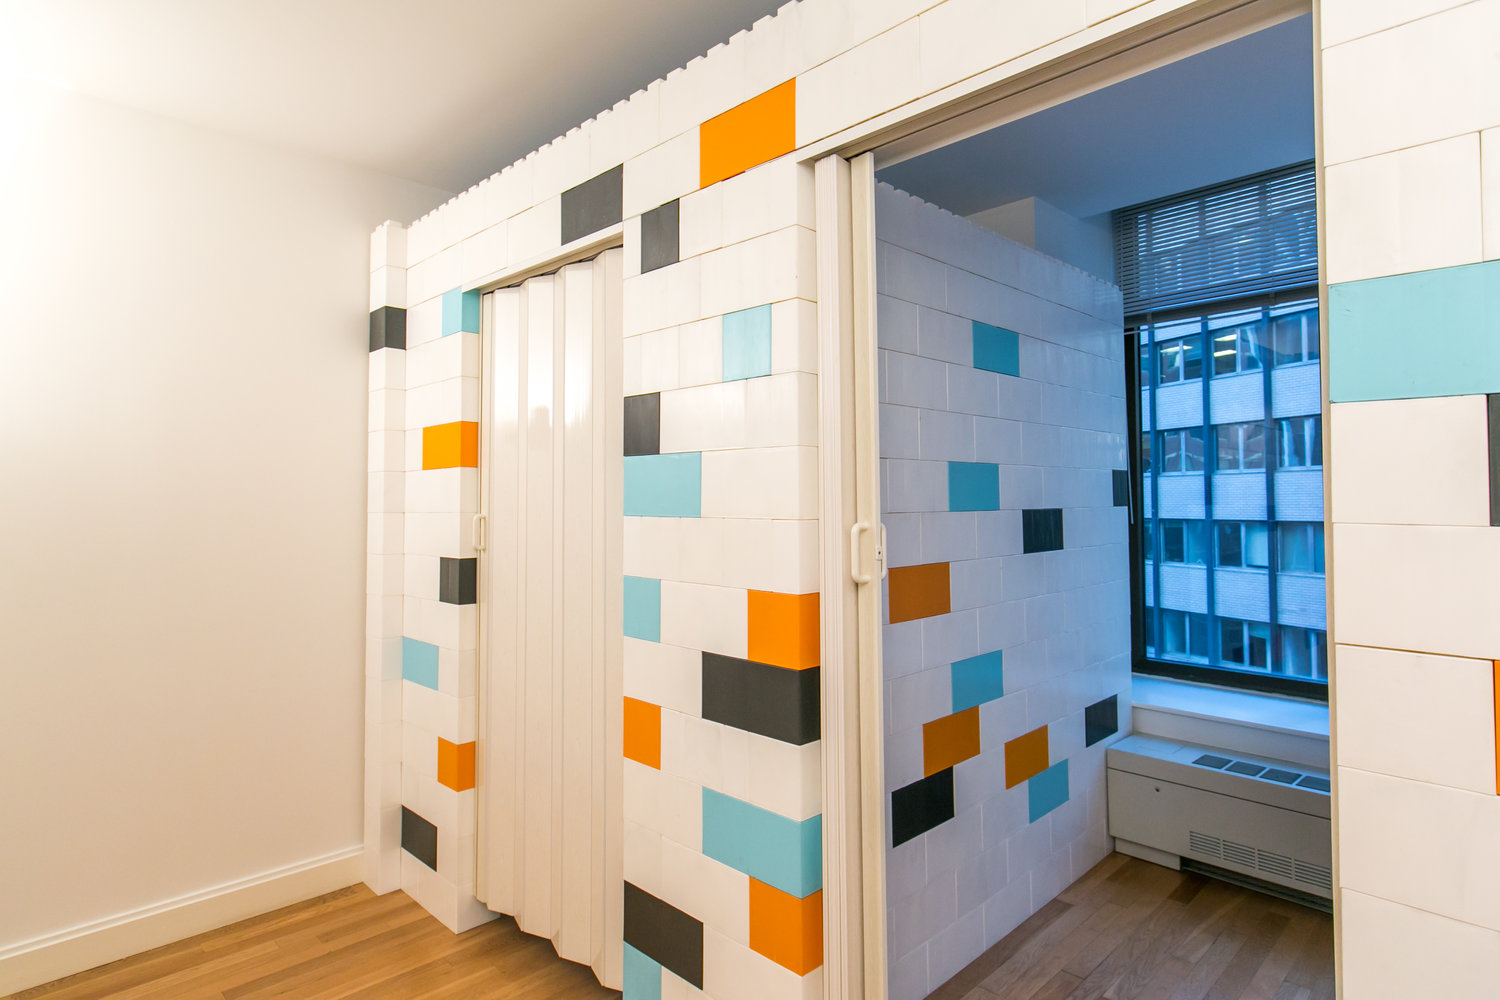 Flex Walls NYC Bring Down Rent Cost by Dividing Room Space